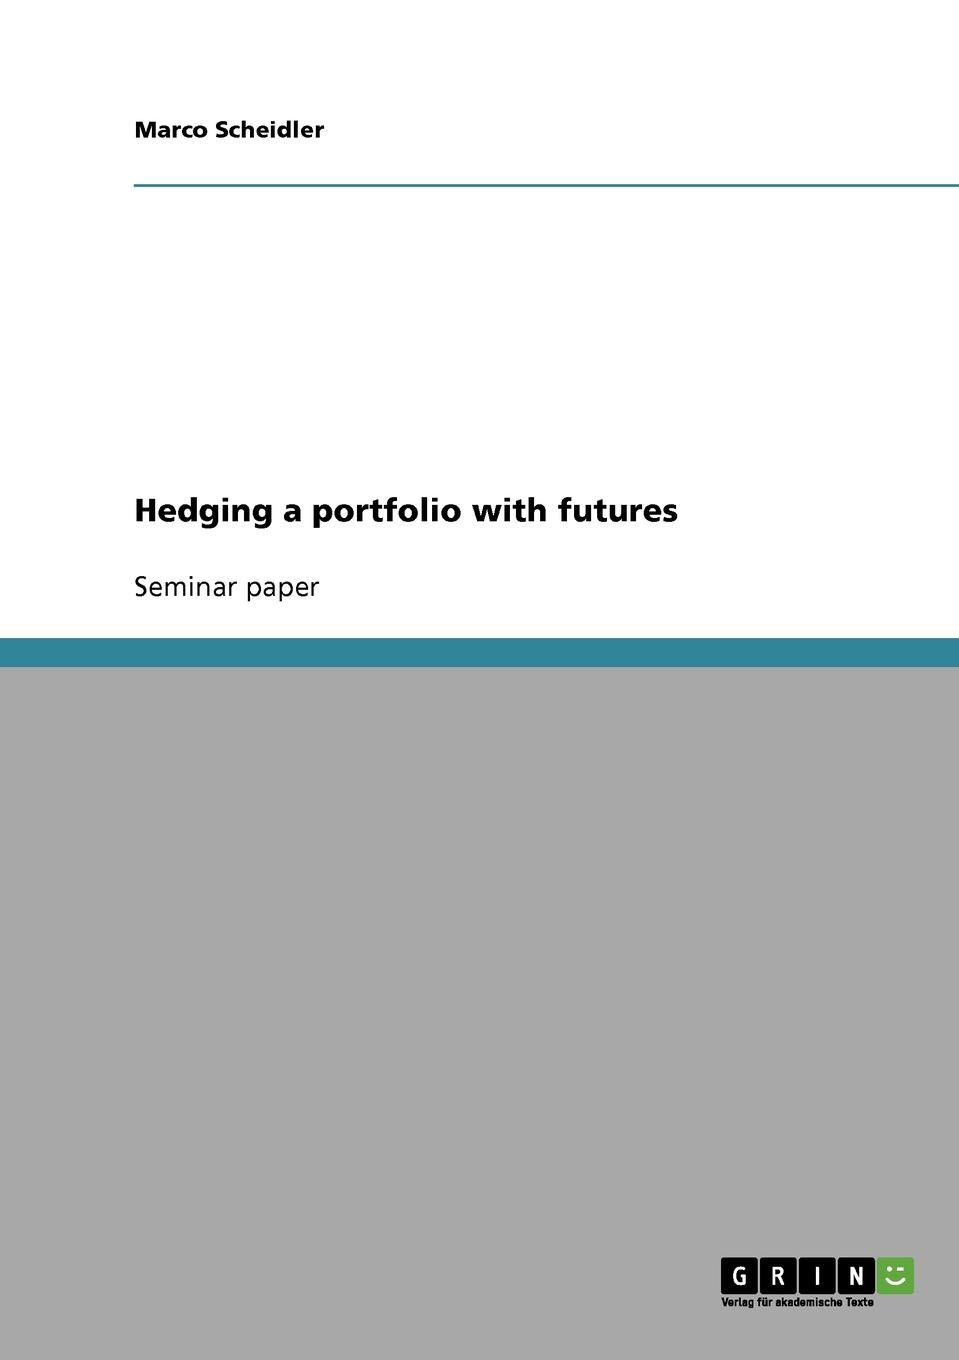 Marco Scheidler Hedging a portfolio with futures cooper rachel constructing futures industry leaders and futures thinking in construction isbn 9781444327847